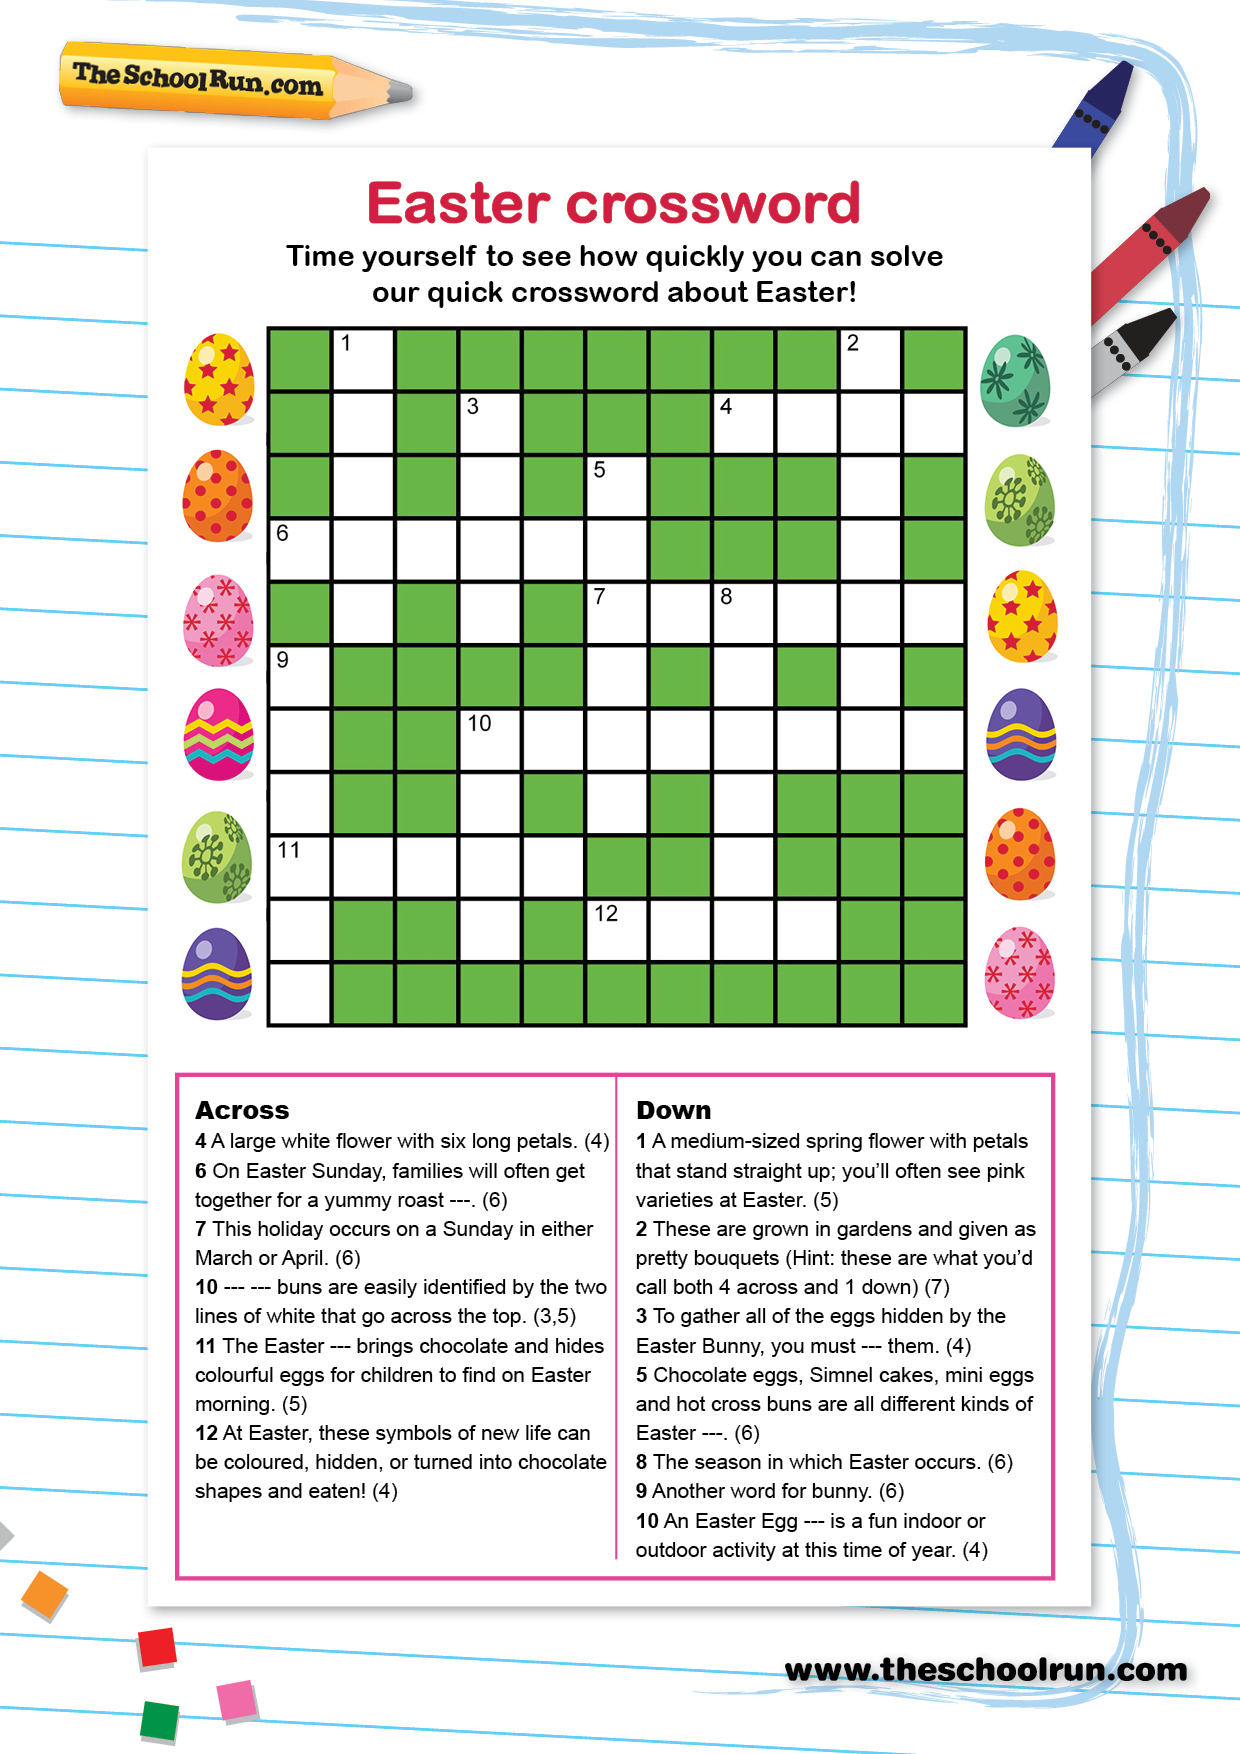 Word Puzzles For Primary School Children | Theschoolrun - Printable Puzzles Ks1